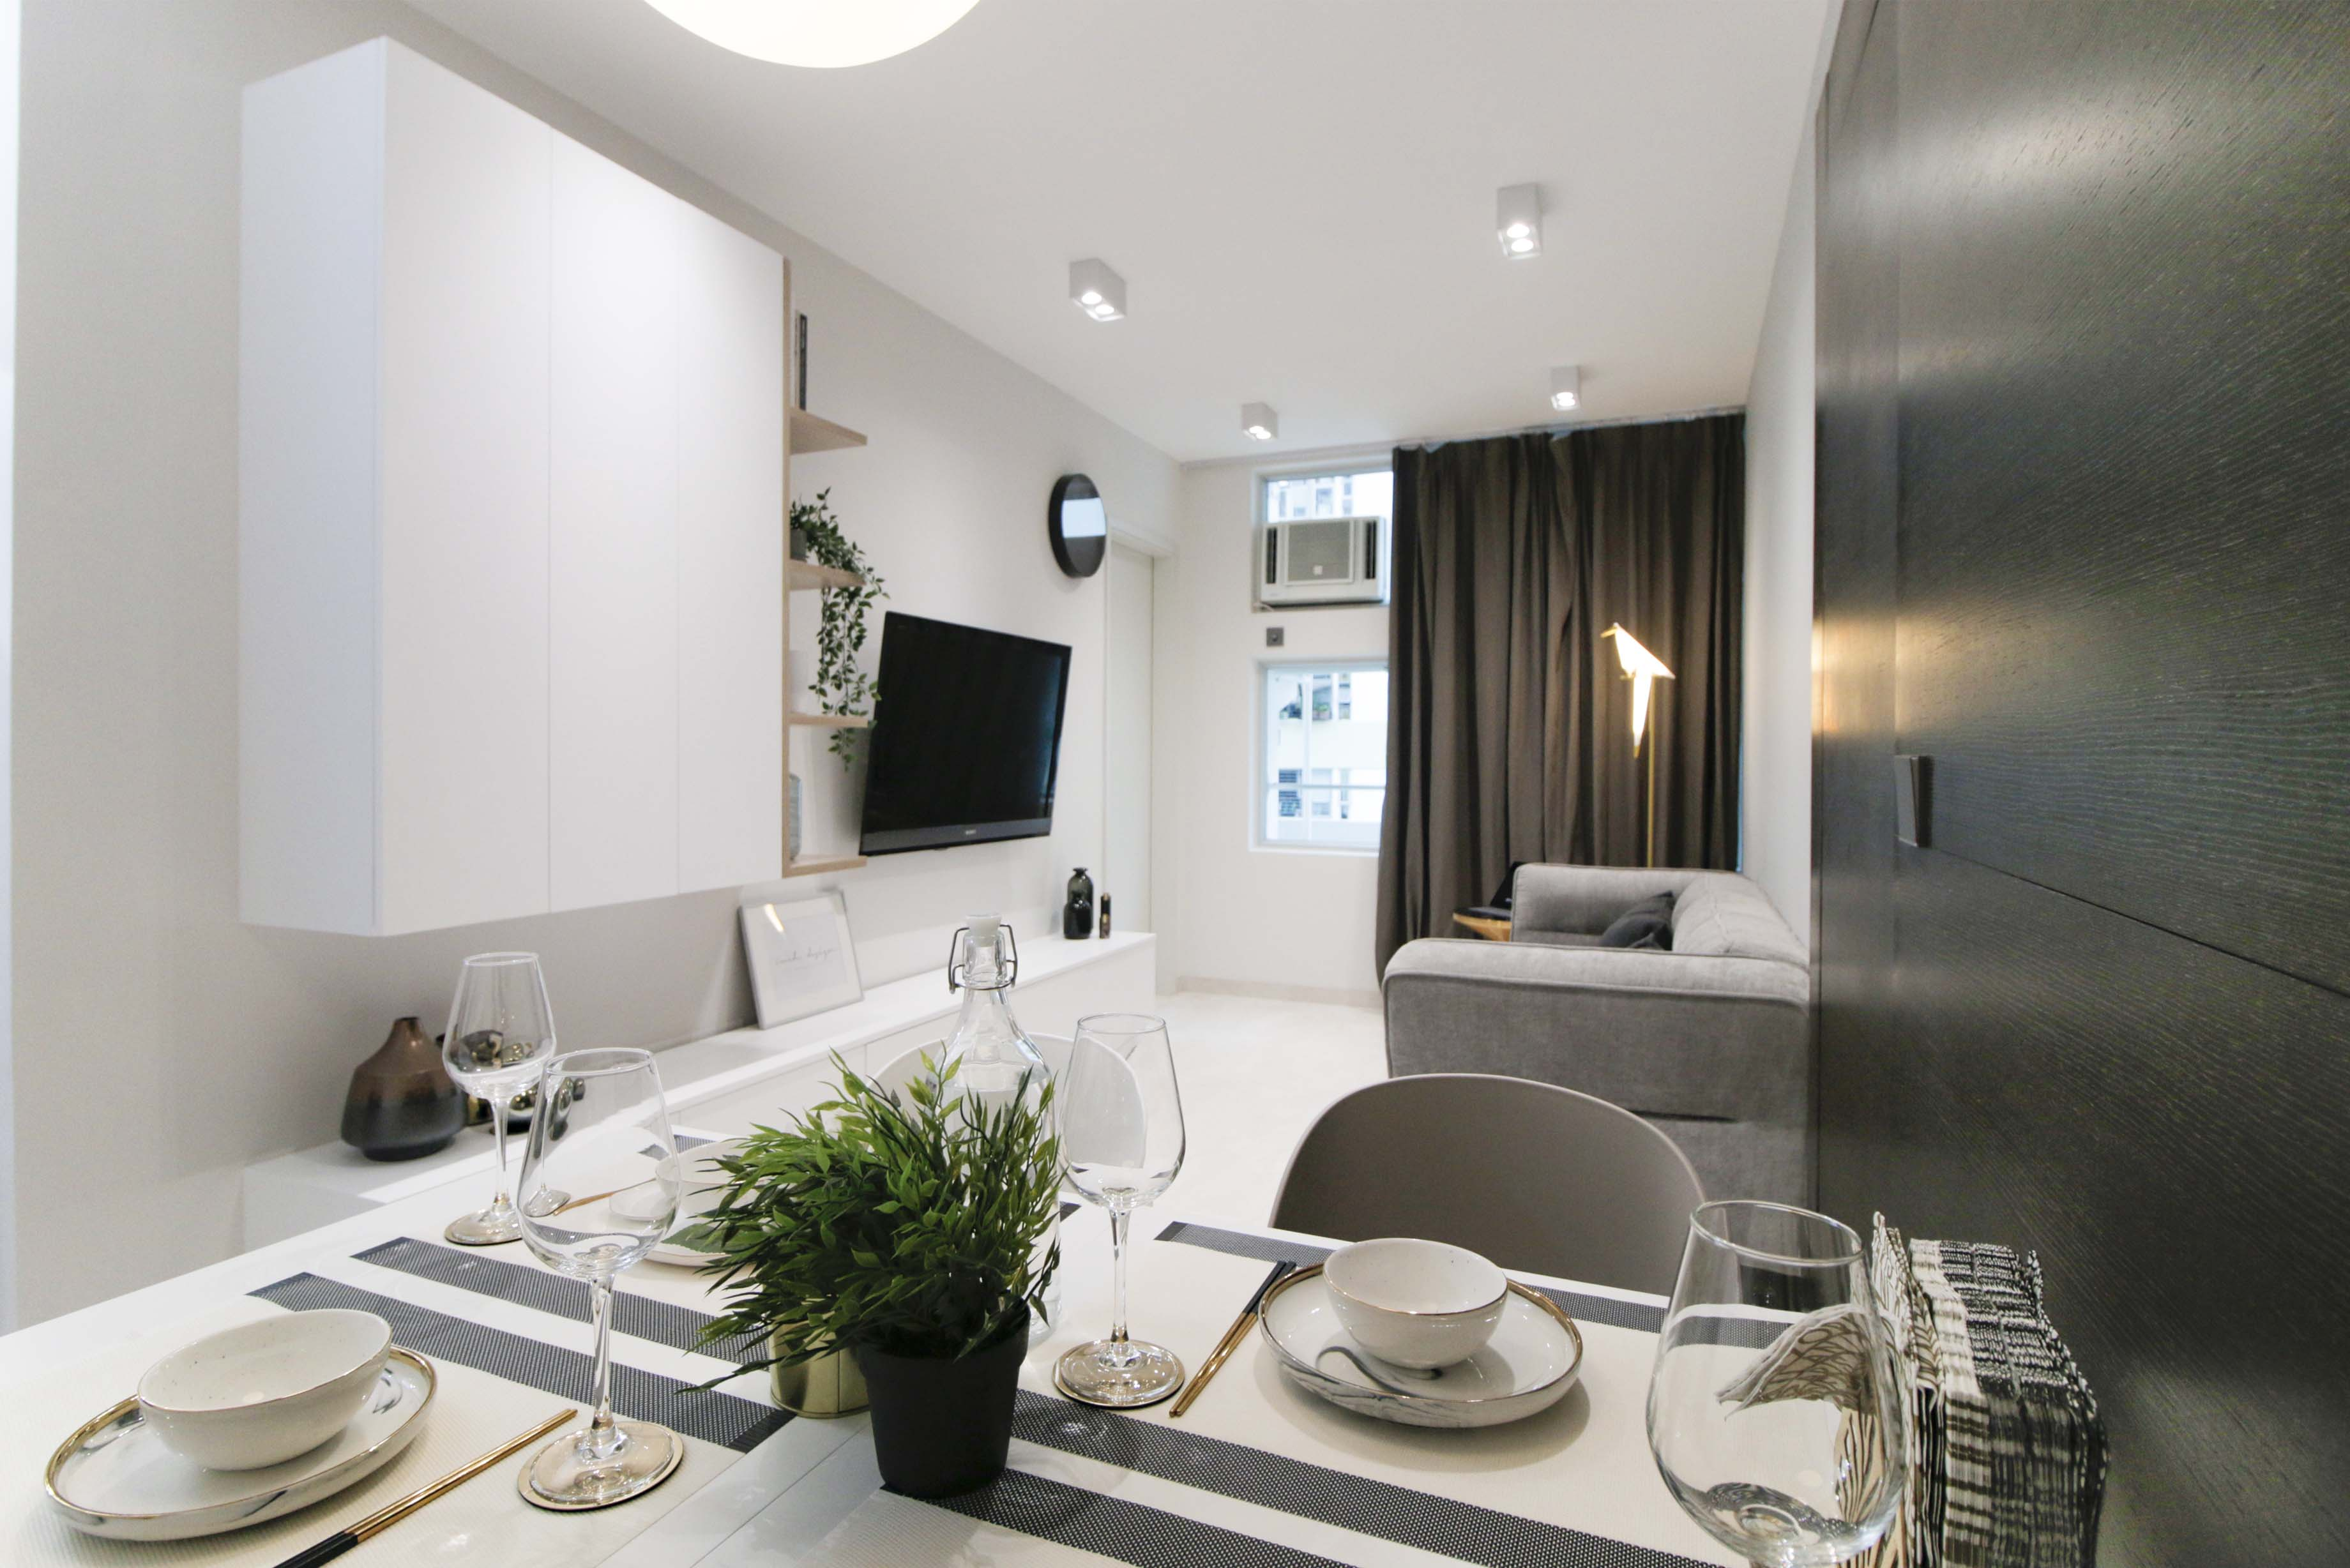 inch interior design hong kong blog